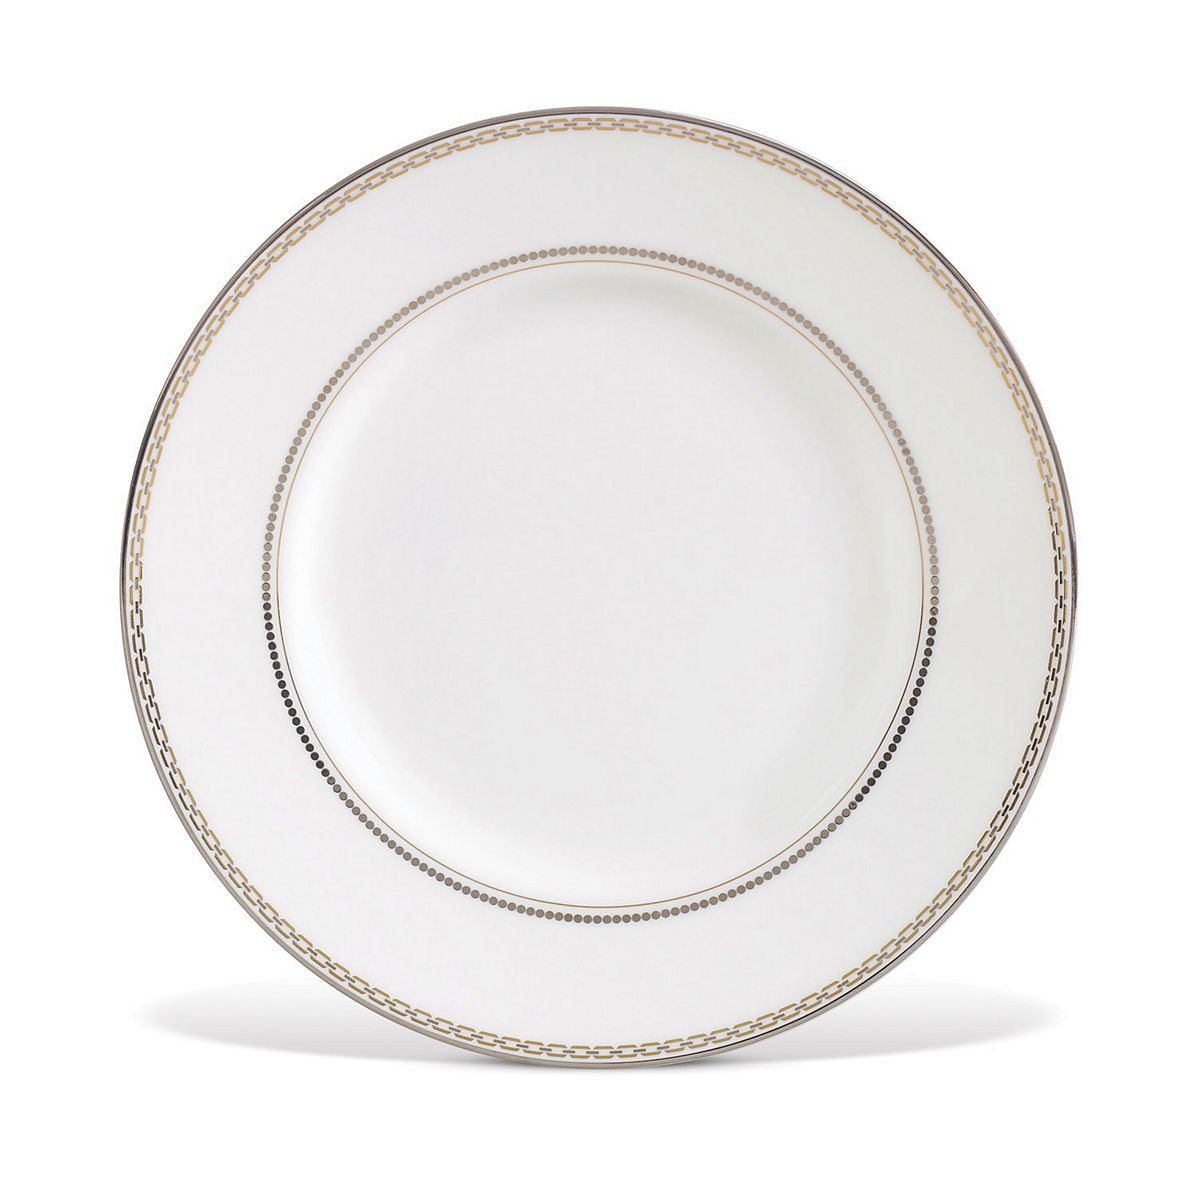 Vera Wang Wedgwood China With Love Bread and Butter Plate, Single